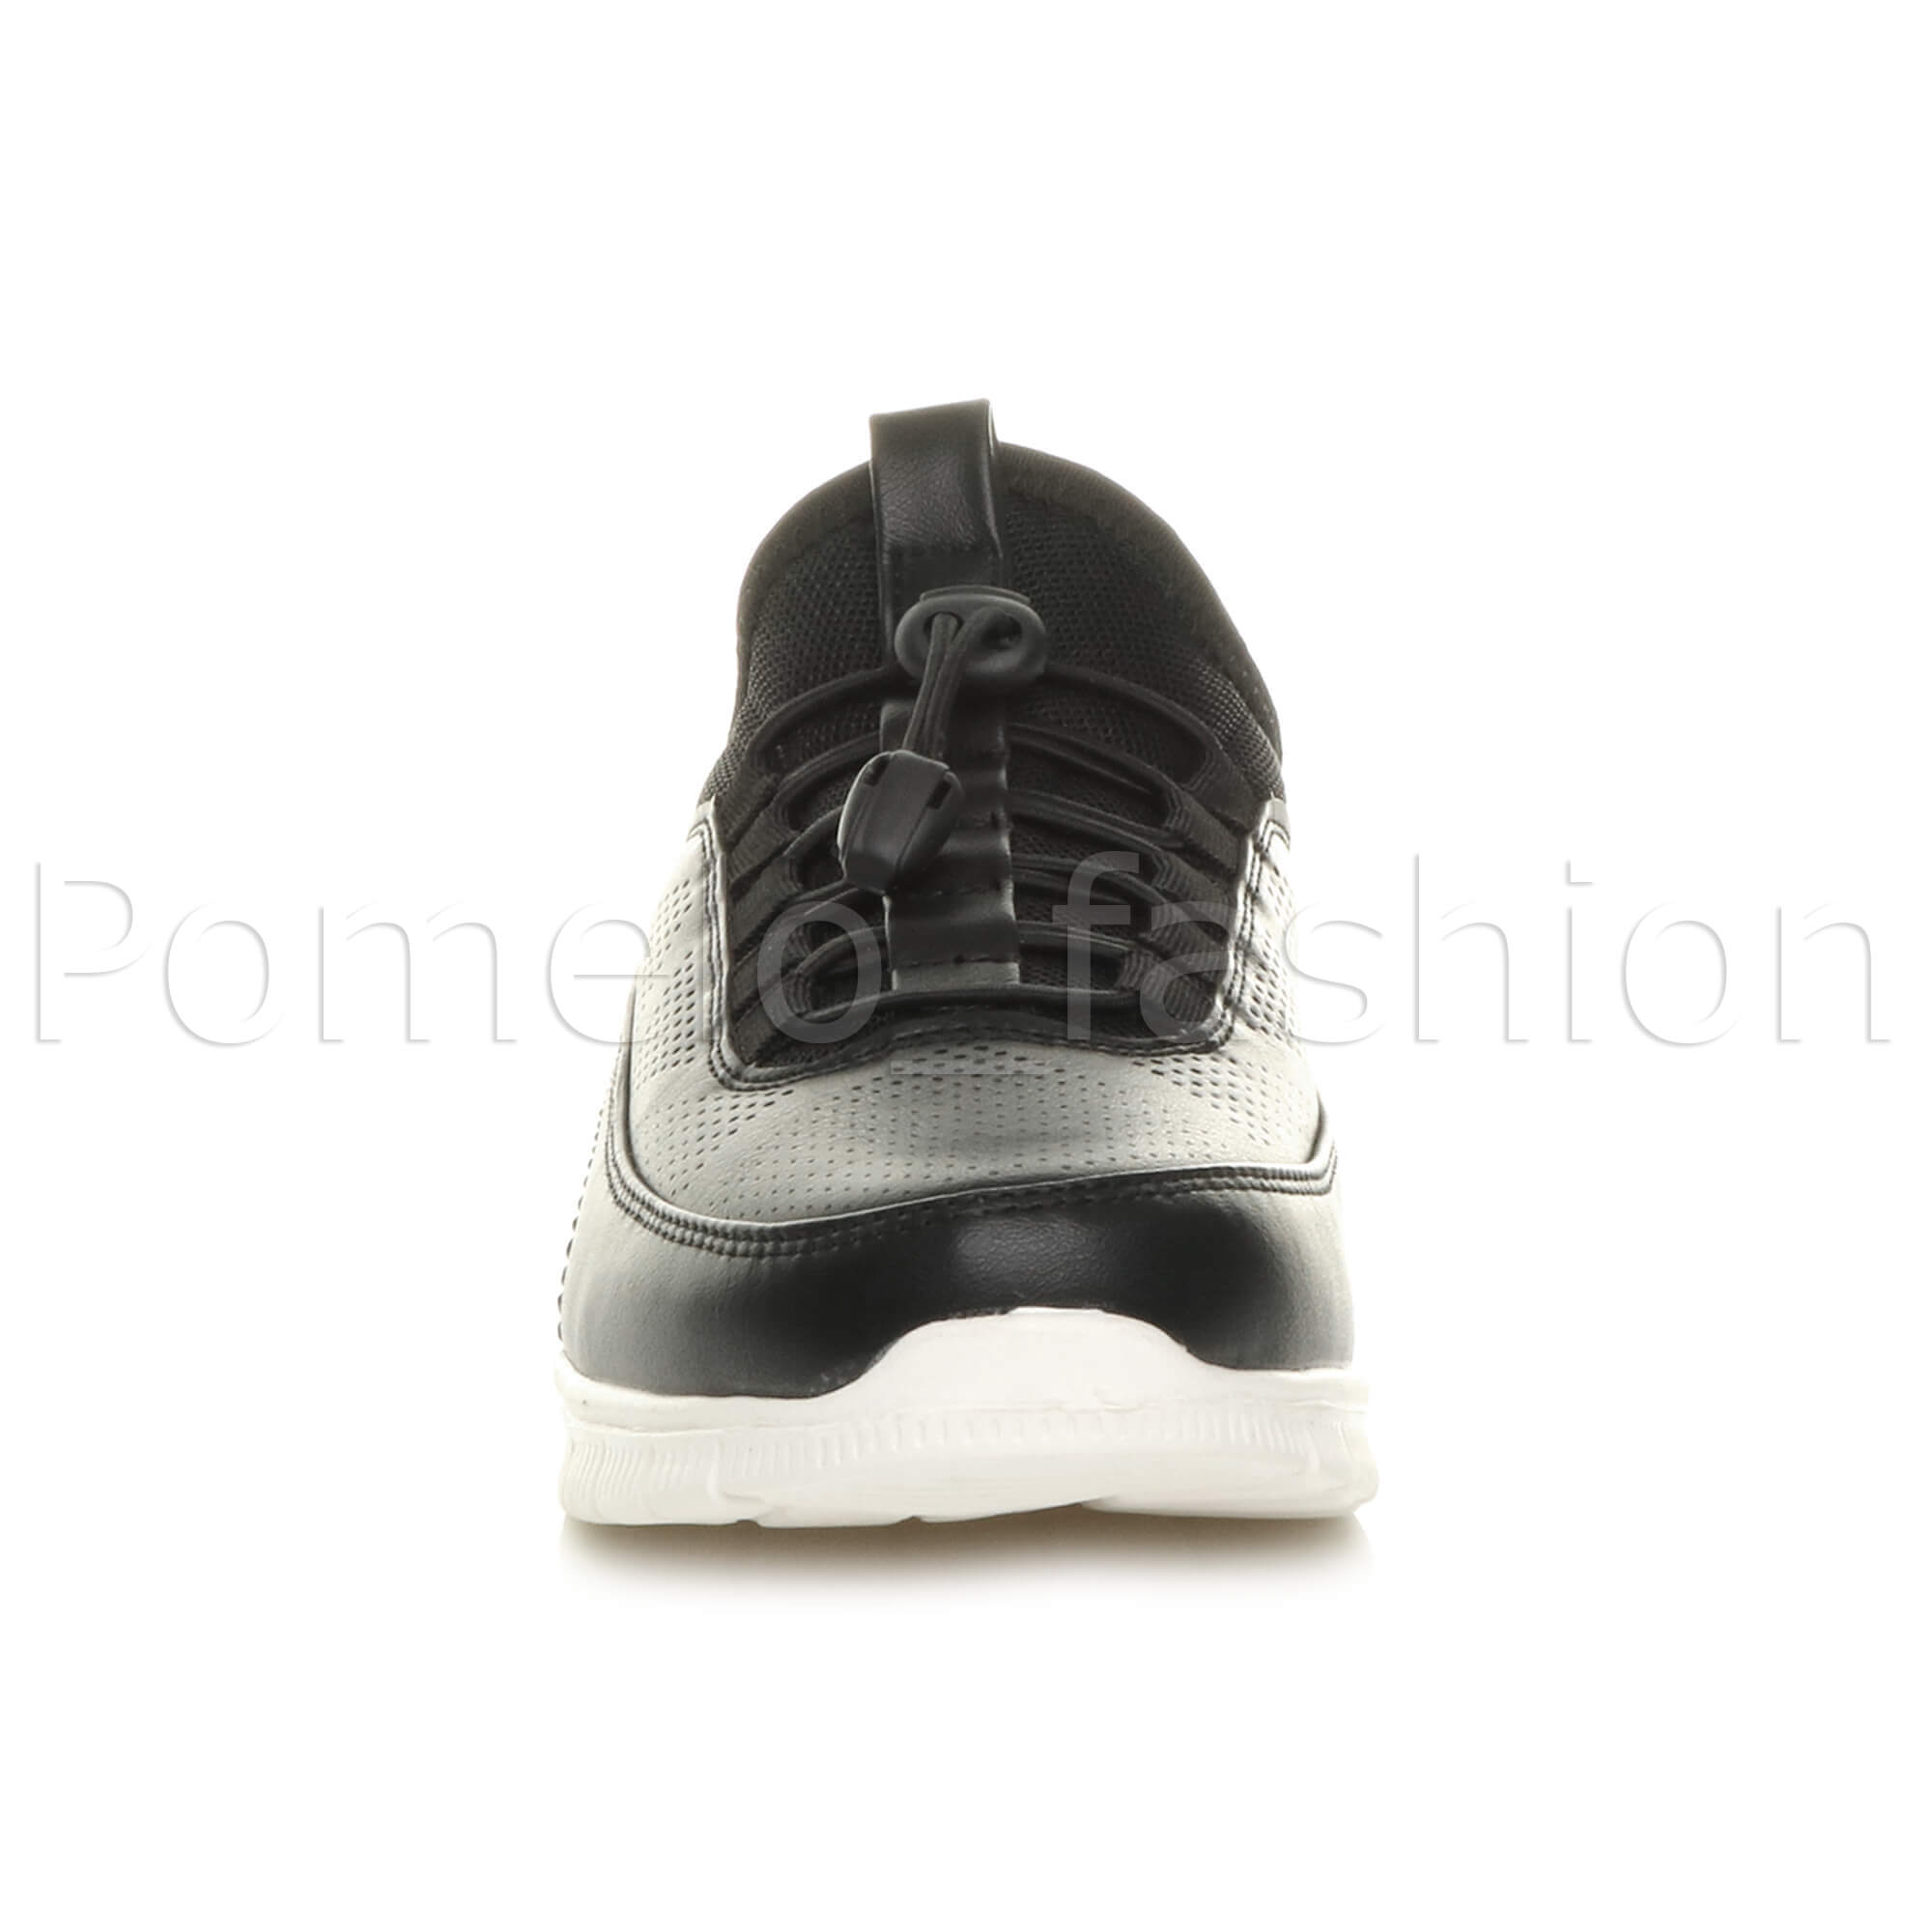 WOMENS-LADIES-FLAT-COMFY-MEMORY-FOAM-FLEXIBLE-ADJUSTABLE-TRAINERS-SNEAKERS-SIZE